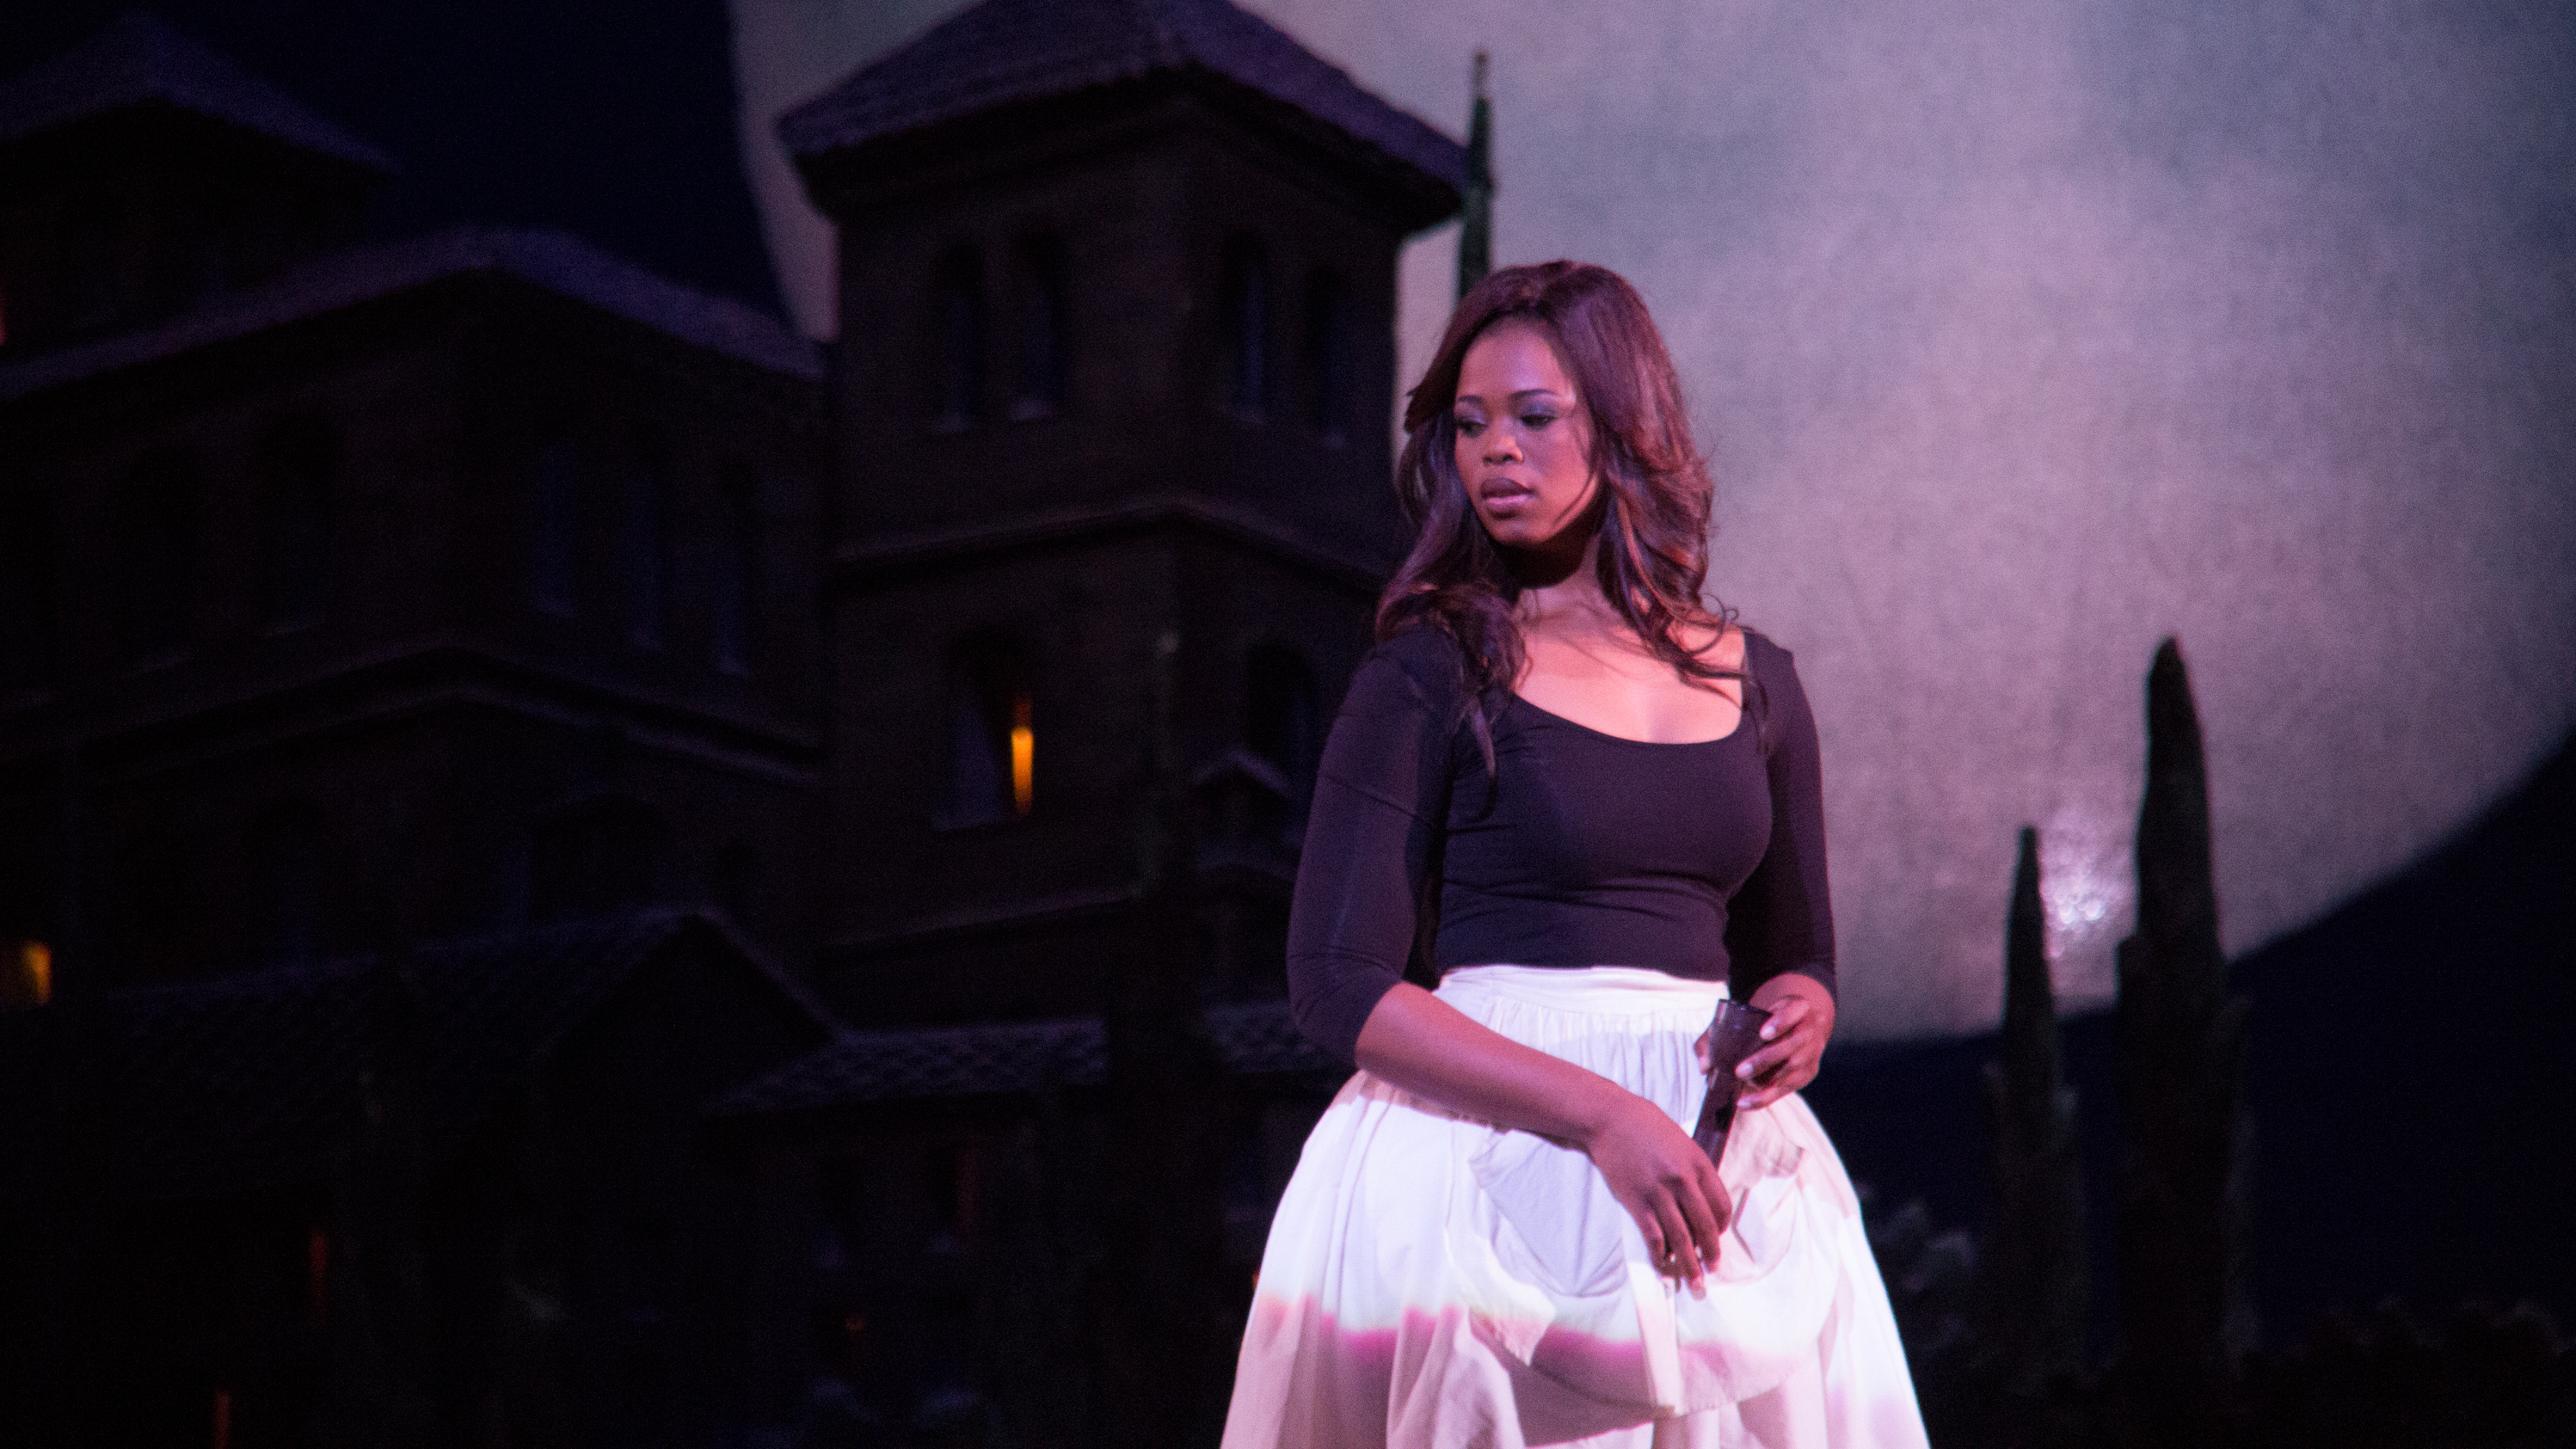 Pretty Yende: An Opera Star Whose Rise Began With A Fall